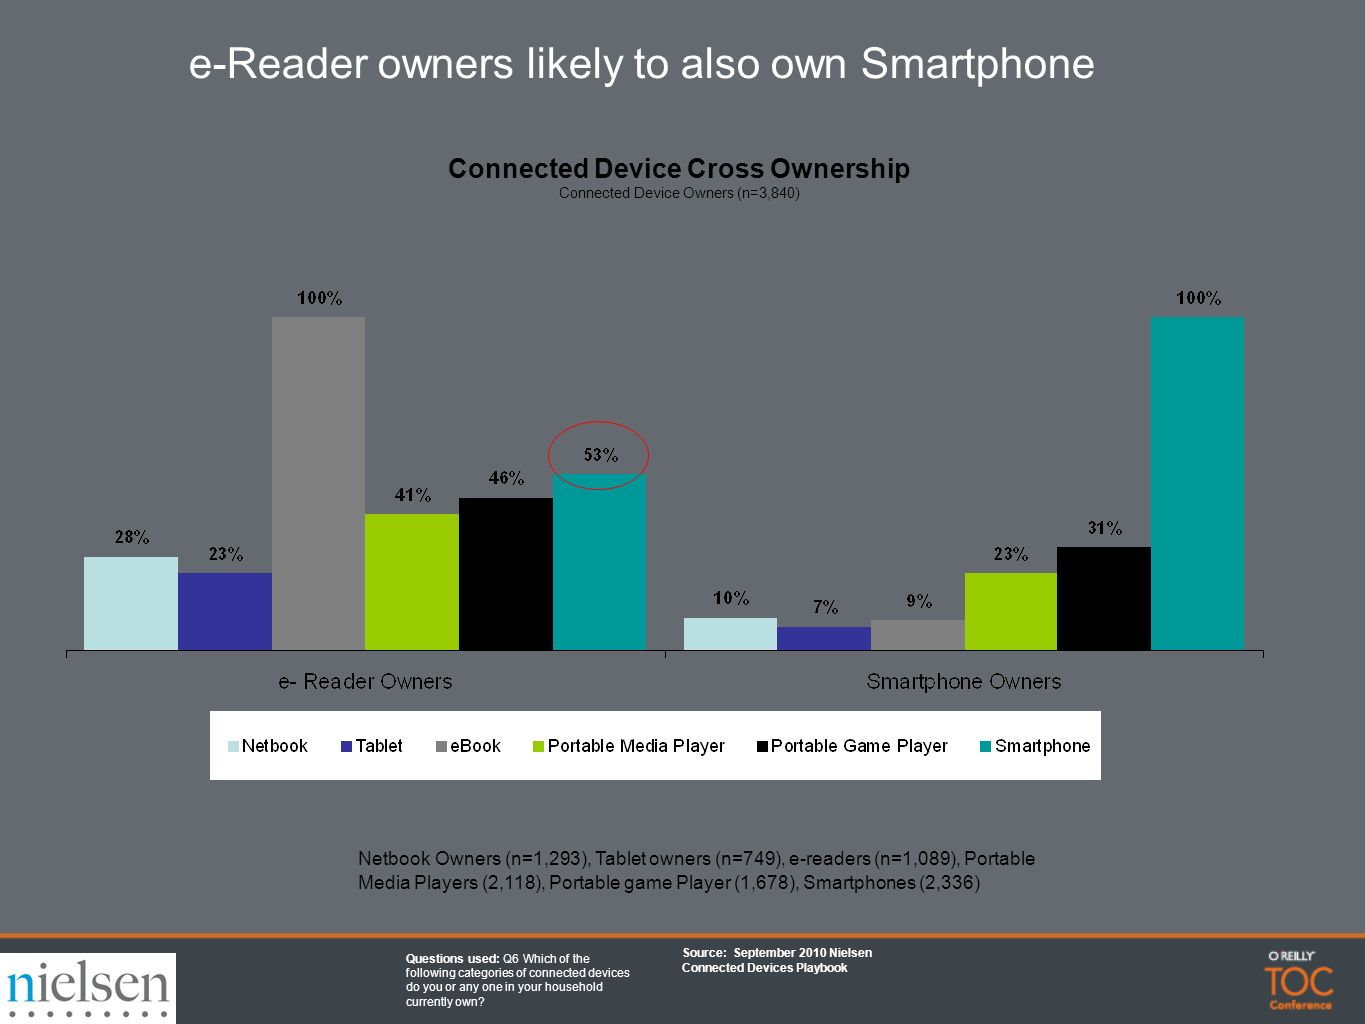 Connected Device Cross Ownership Connected Device Owners (n=3,840) Netbook Owners (n=1,293), Tablet owners (n=749), e-readers (n=1,089), Portable Media Players (2,118), Portable game Player (1,678), Smartphones (2,336) Source: September 2010 Nielsen Connected Devices Playbook Questions used: Q6 Which of the following categories of connected devices do you or any one in your household currently own.